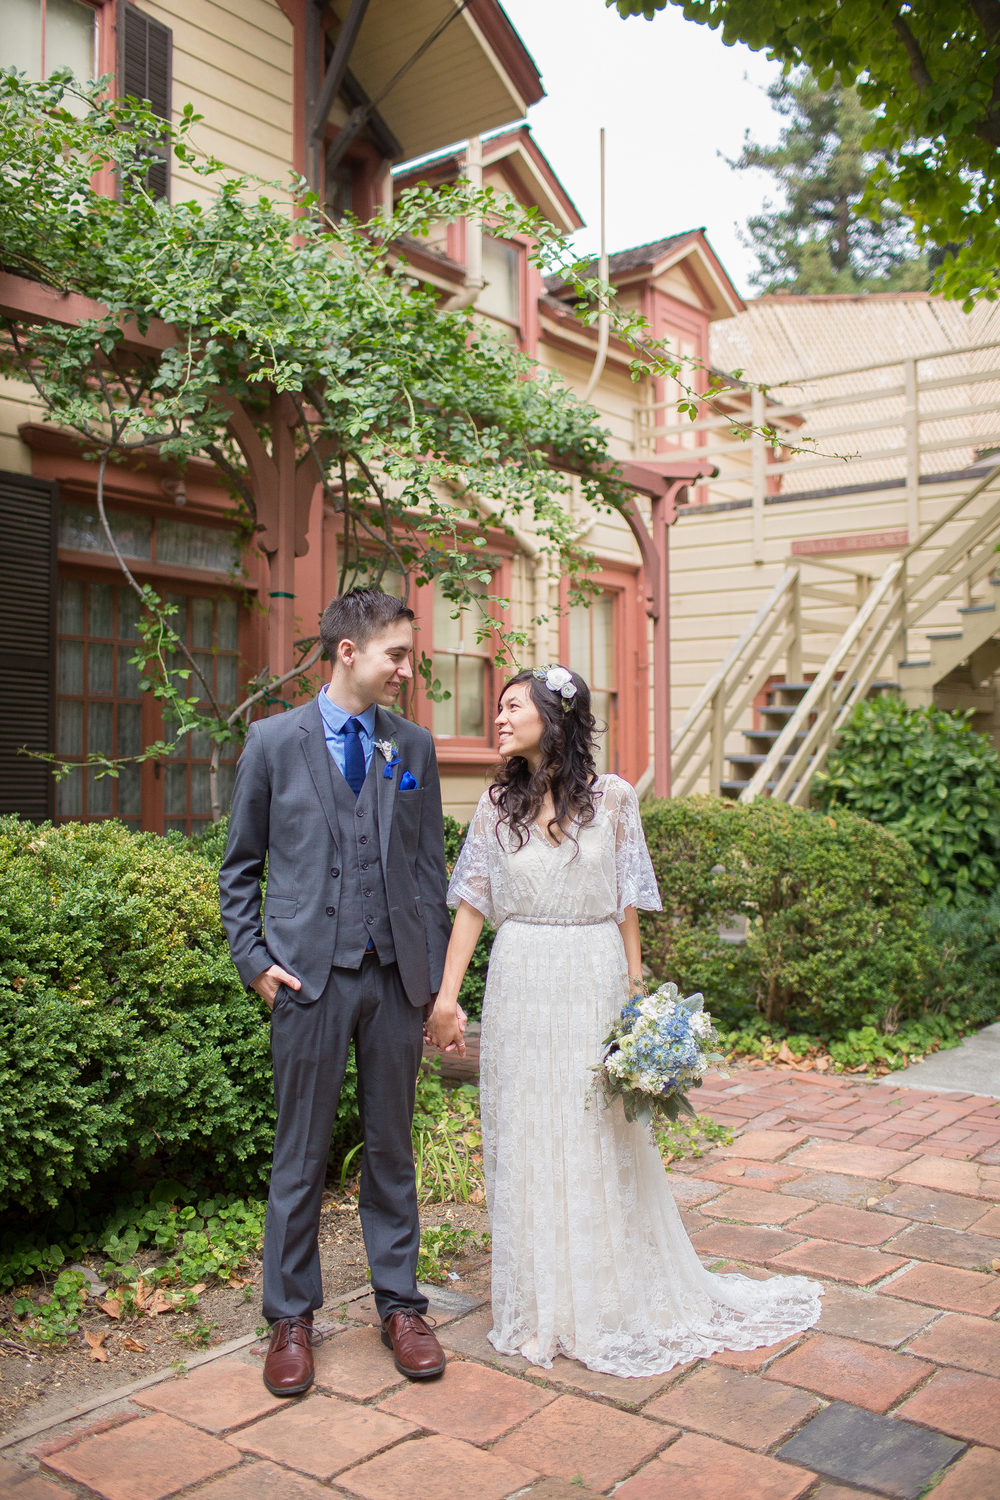 Chico California Wedding and Engagement Photography by TréCreative - Fremont Wedding Photography (130 of 261).jpg